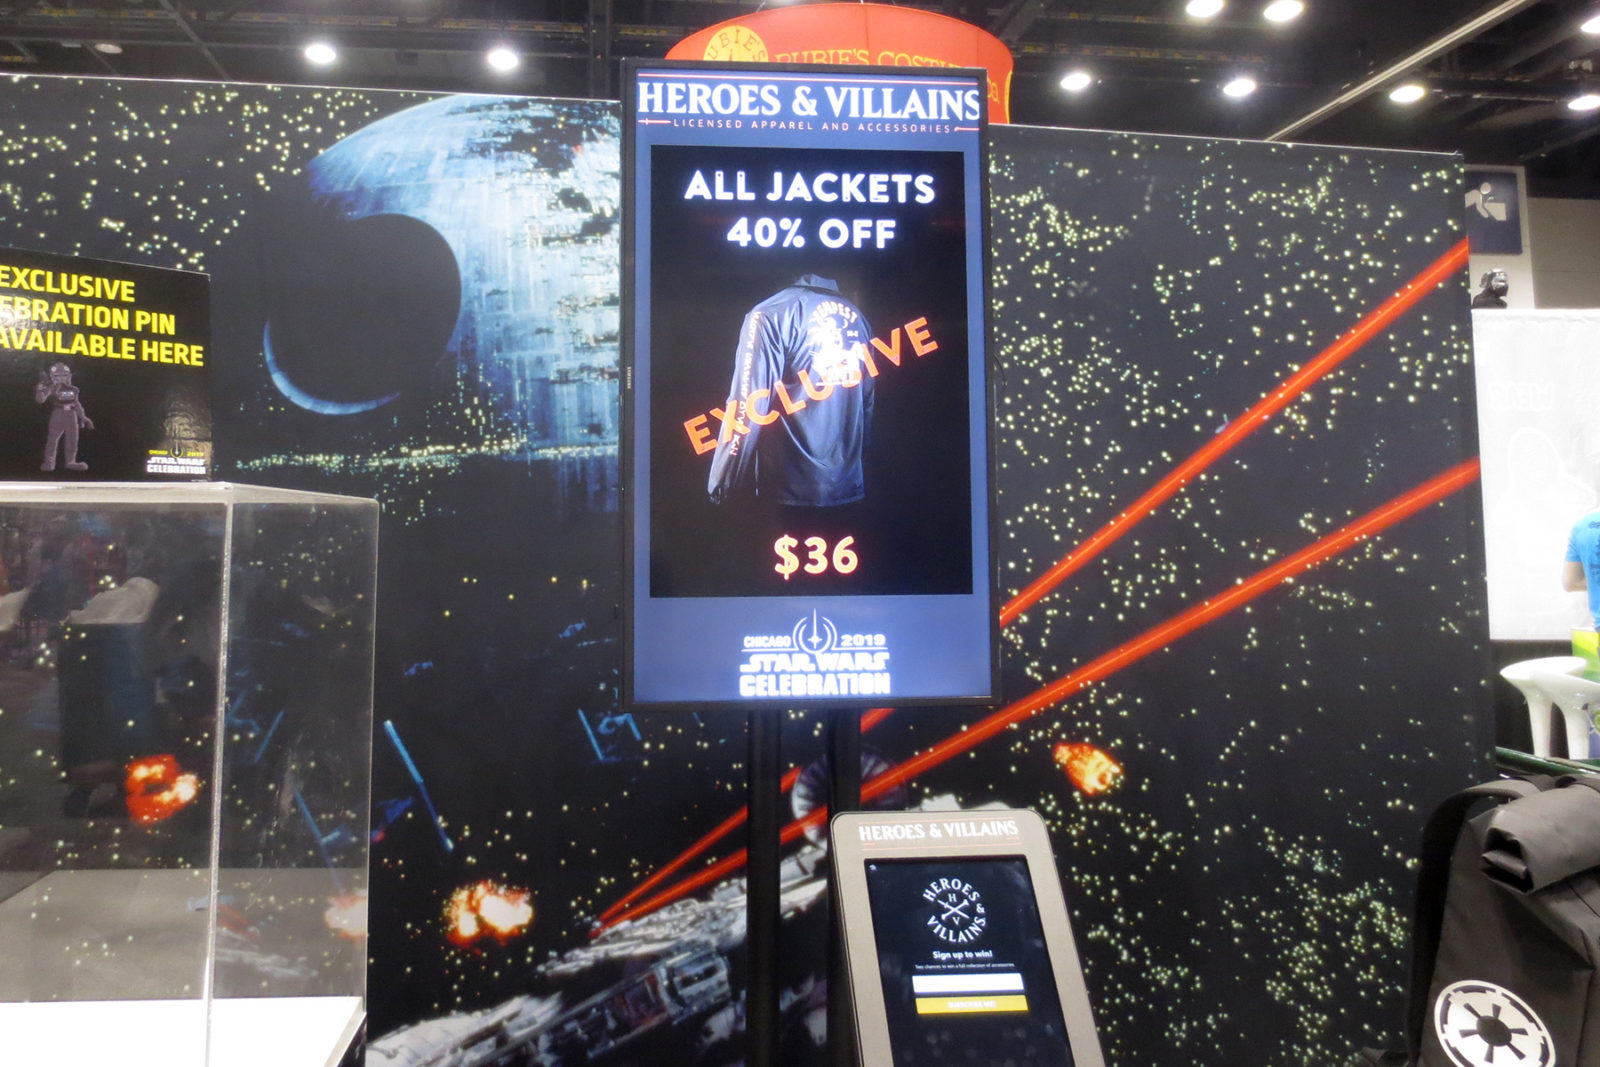 Heroes & Villains at Star Wars Celebration Chicago 2019